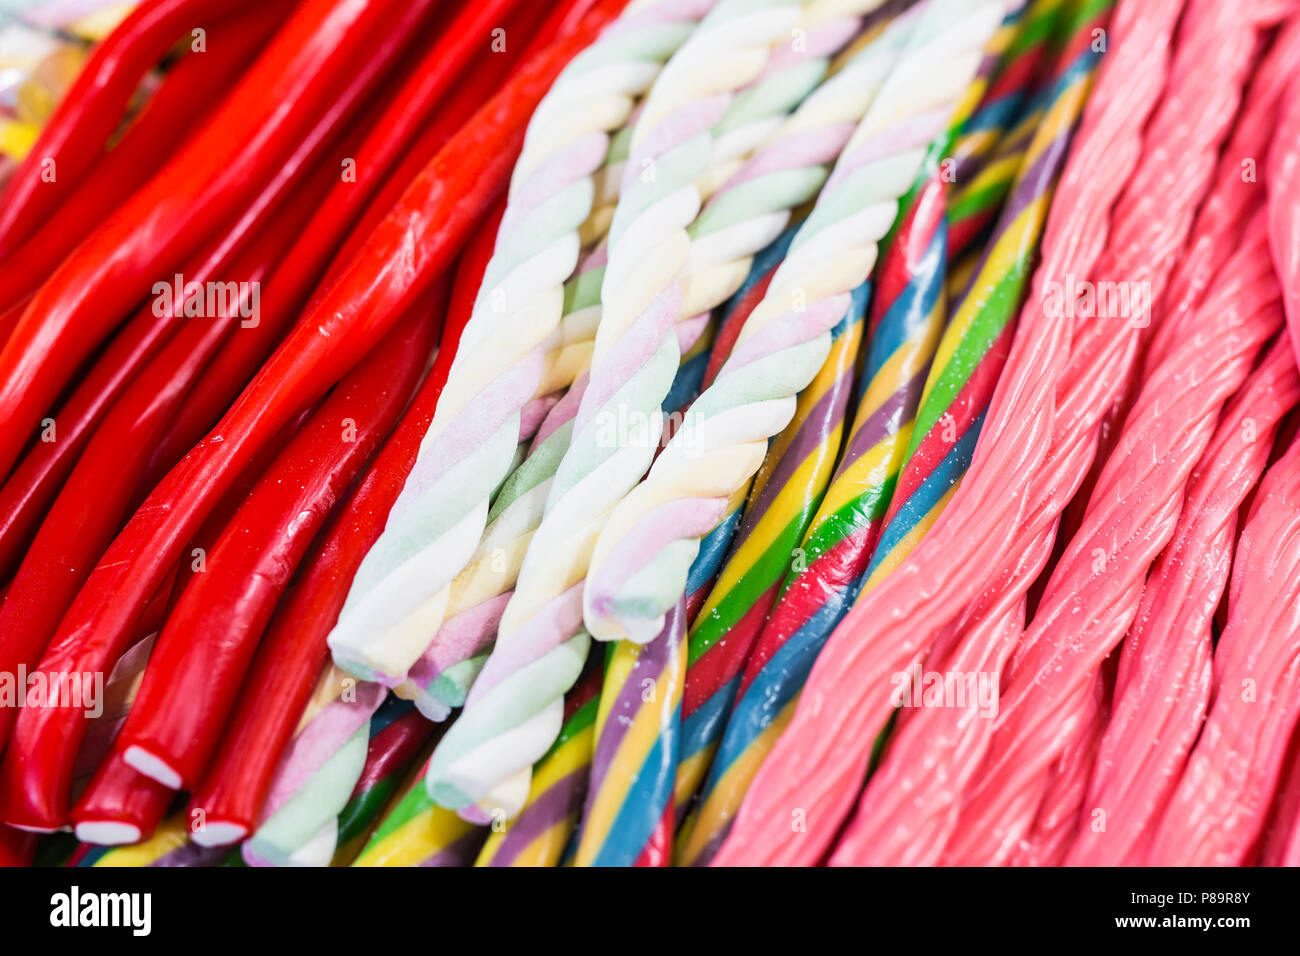 Wonderful candy sticks in any color and appearance. - Stock Image